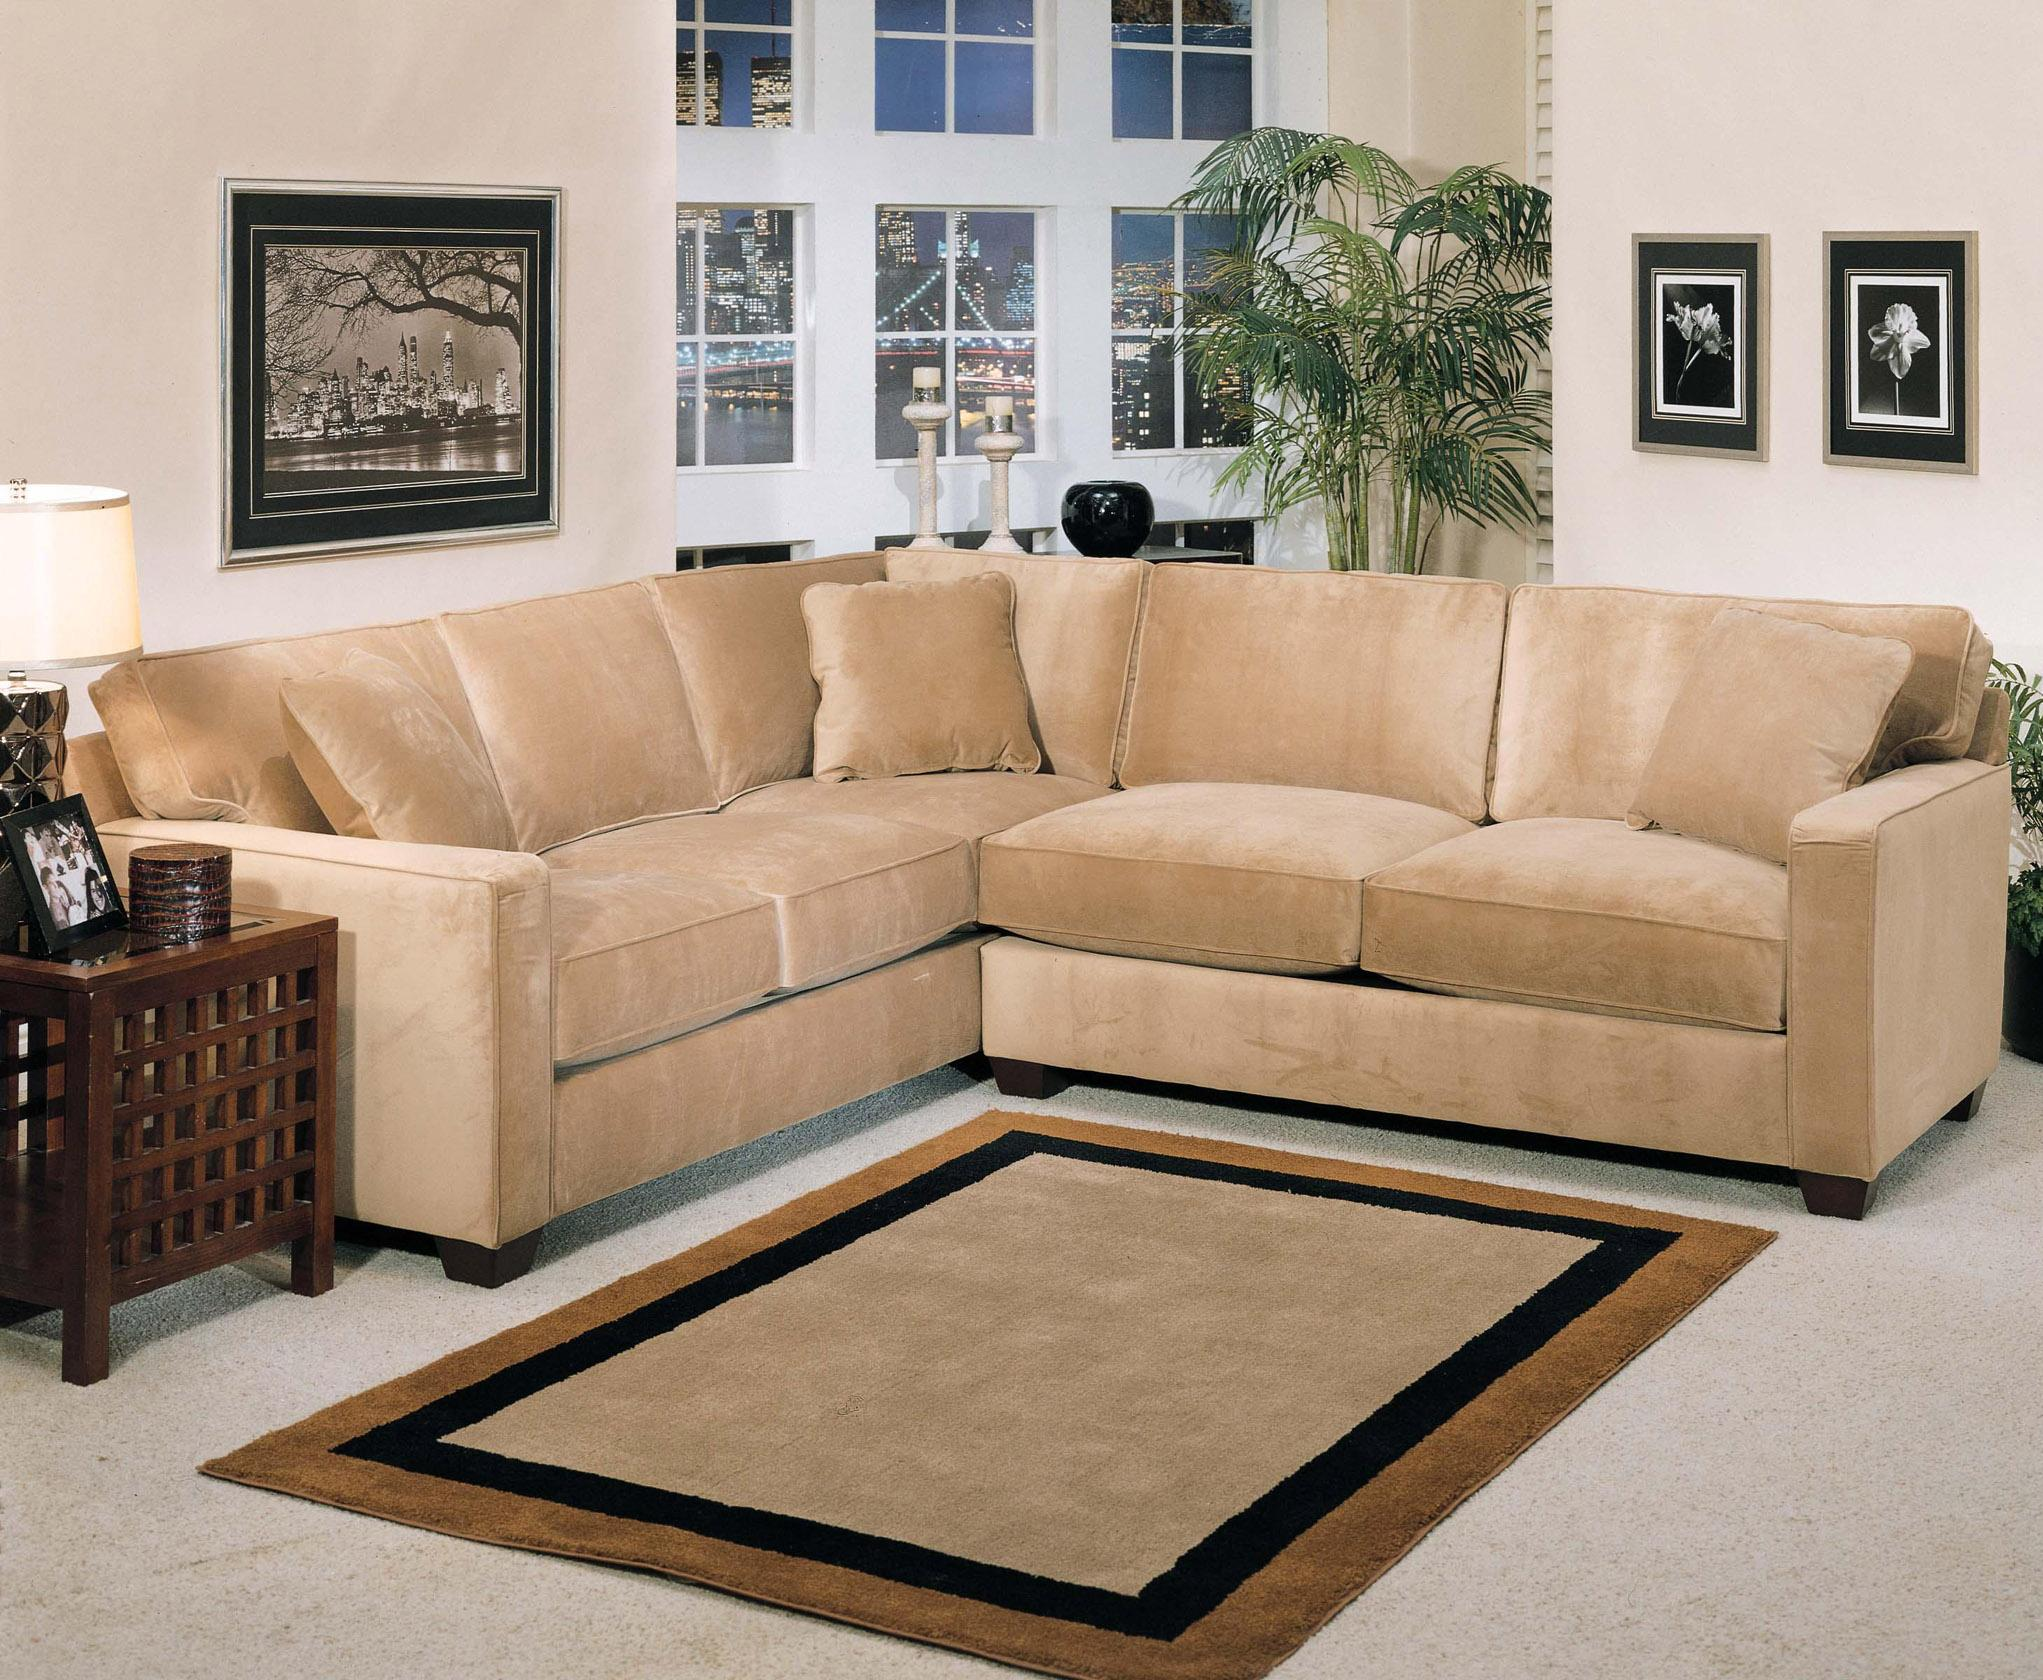 Jonathan Louis Bradford 2 Piece Stationary Sectional Fashion Furniture Sofa Sectional